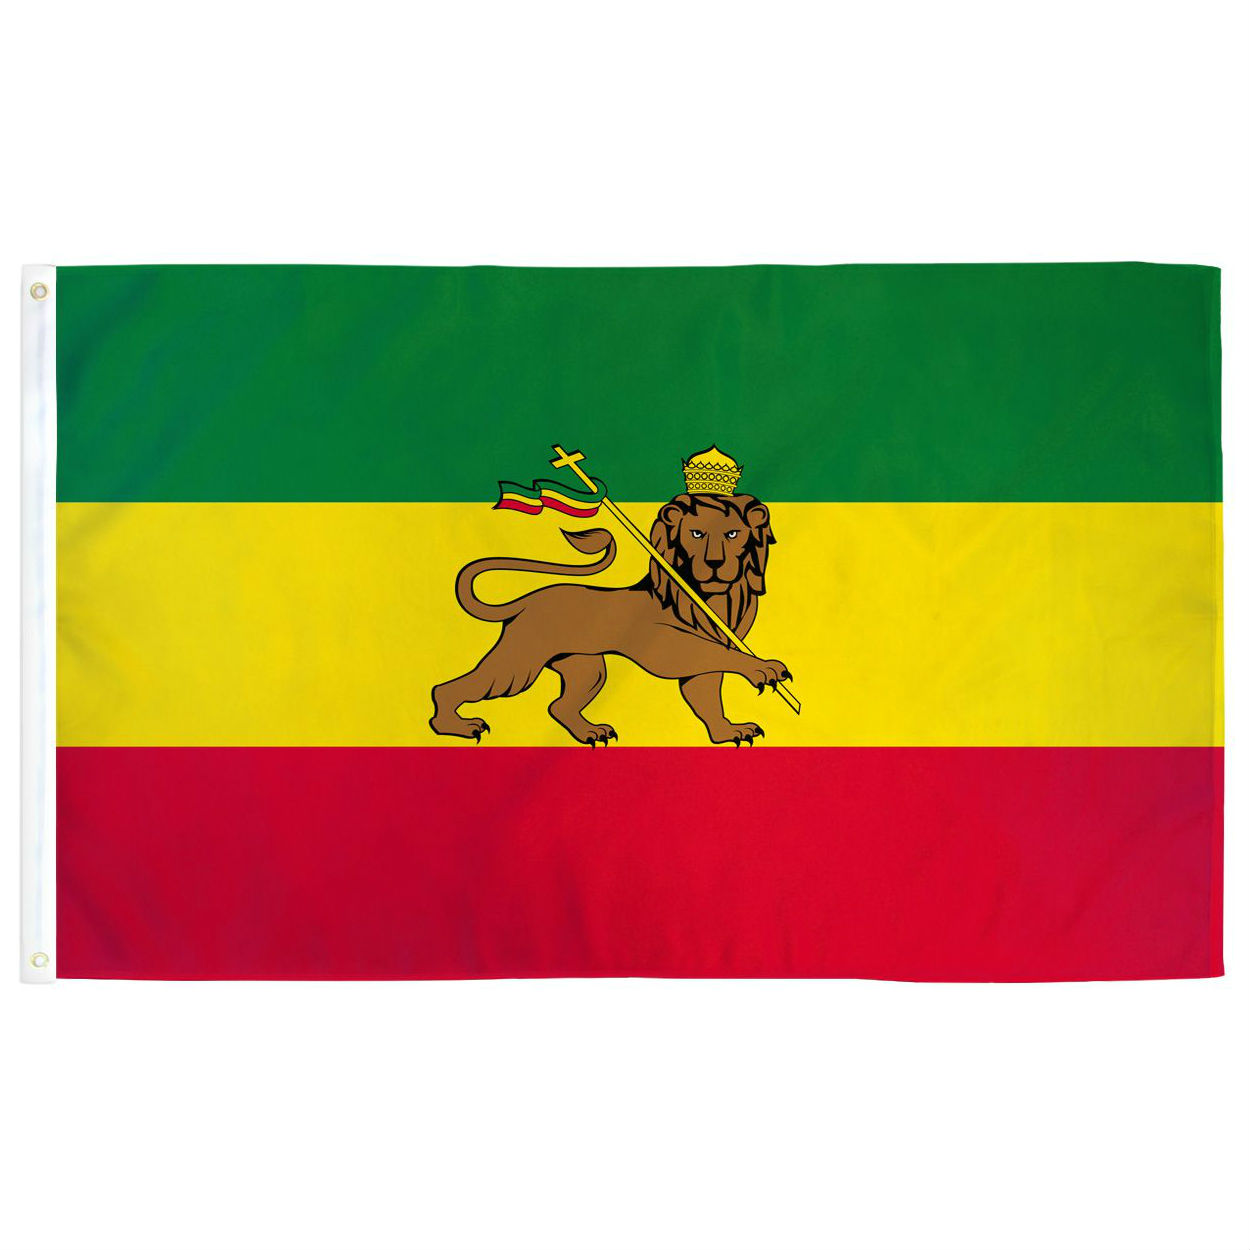 Wholesales stock 100% polyester silk screen printing double stitched 68D Polyester Ethiopia Lion (Light Duty) Flag